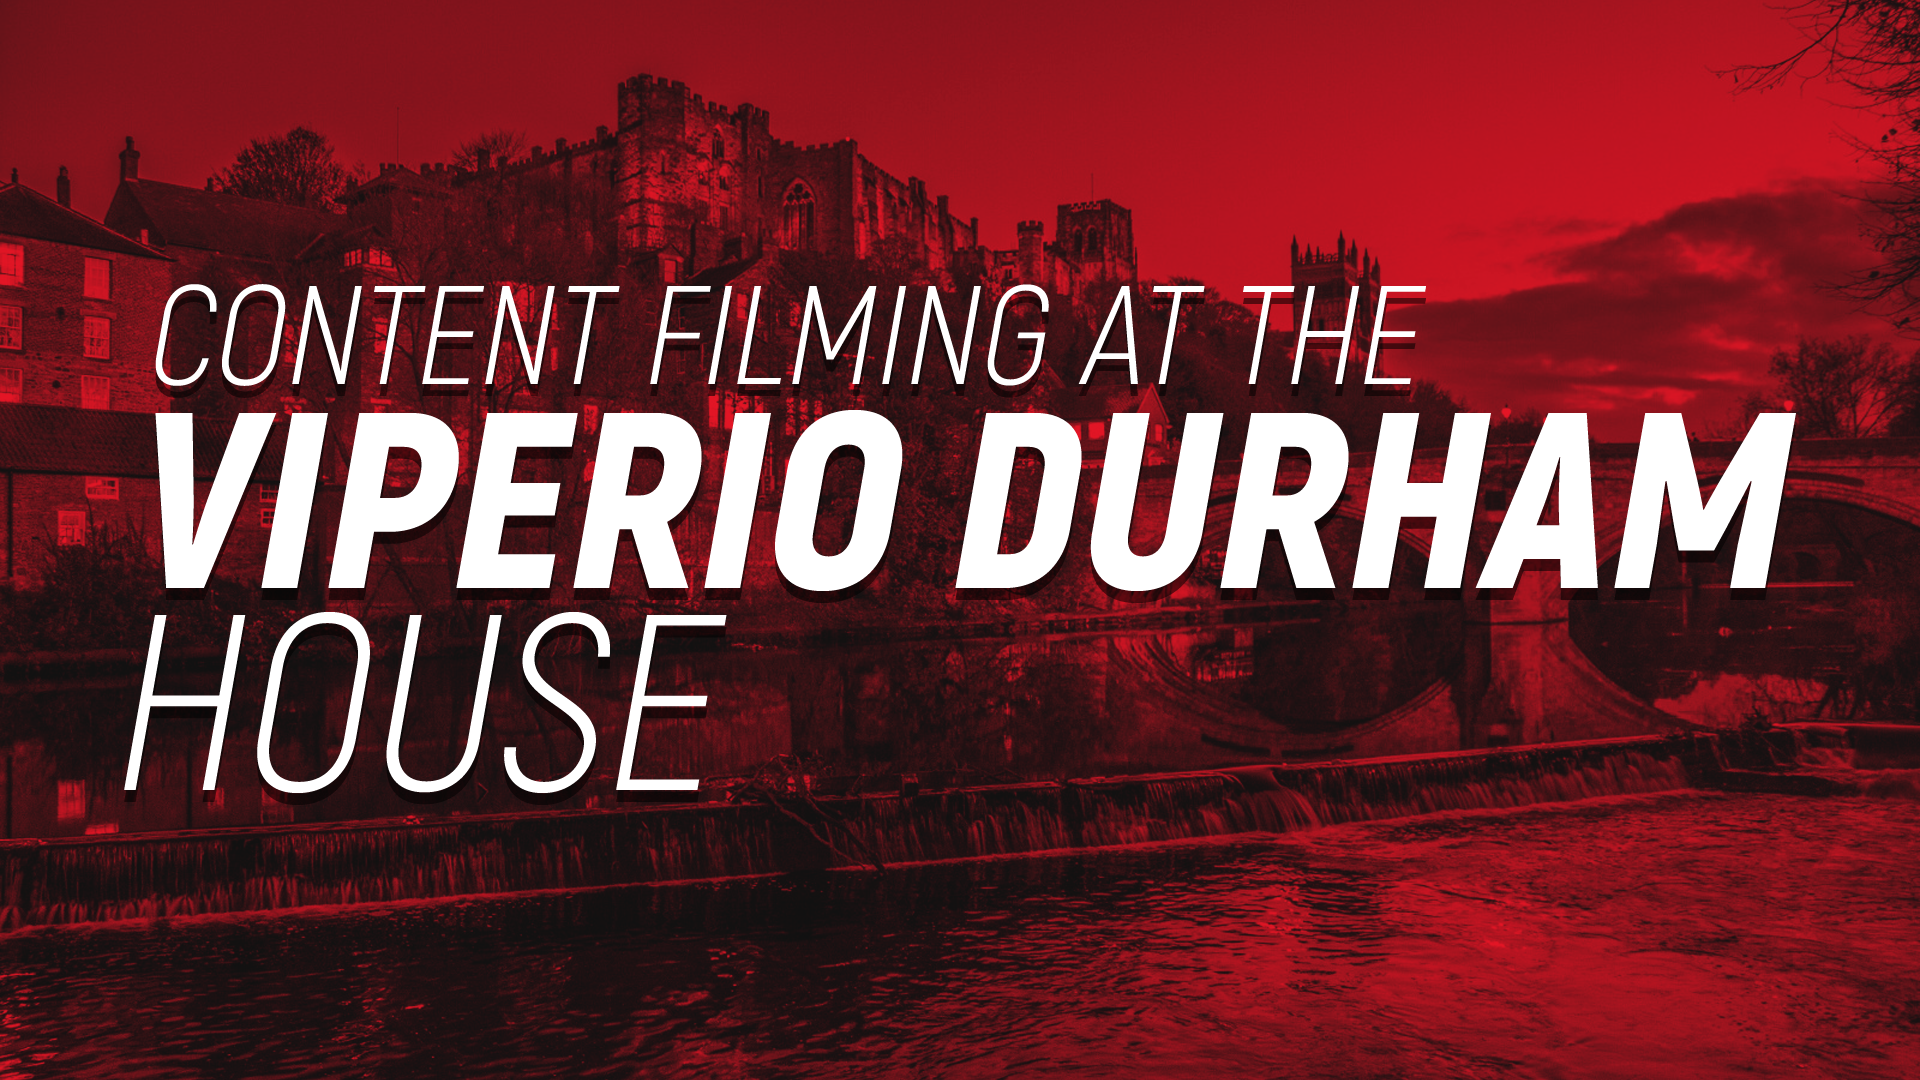 Viperio travel to Durham for content filming